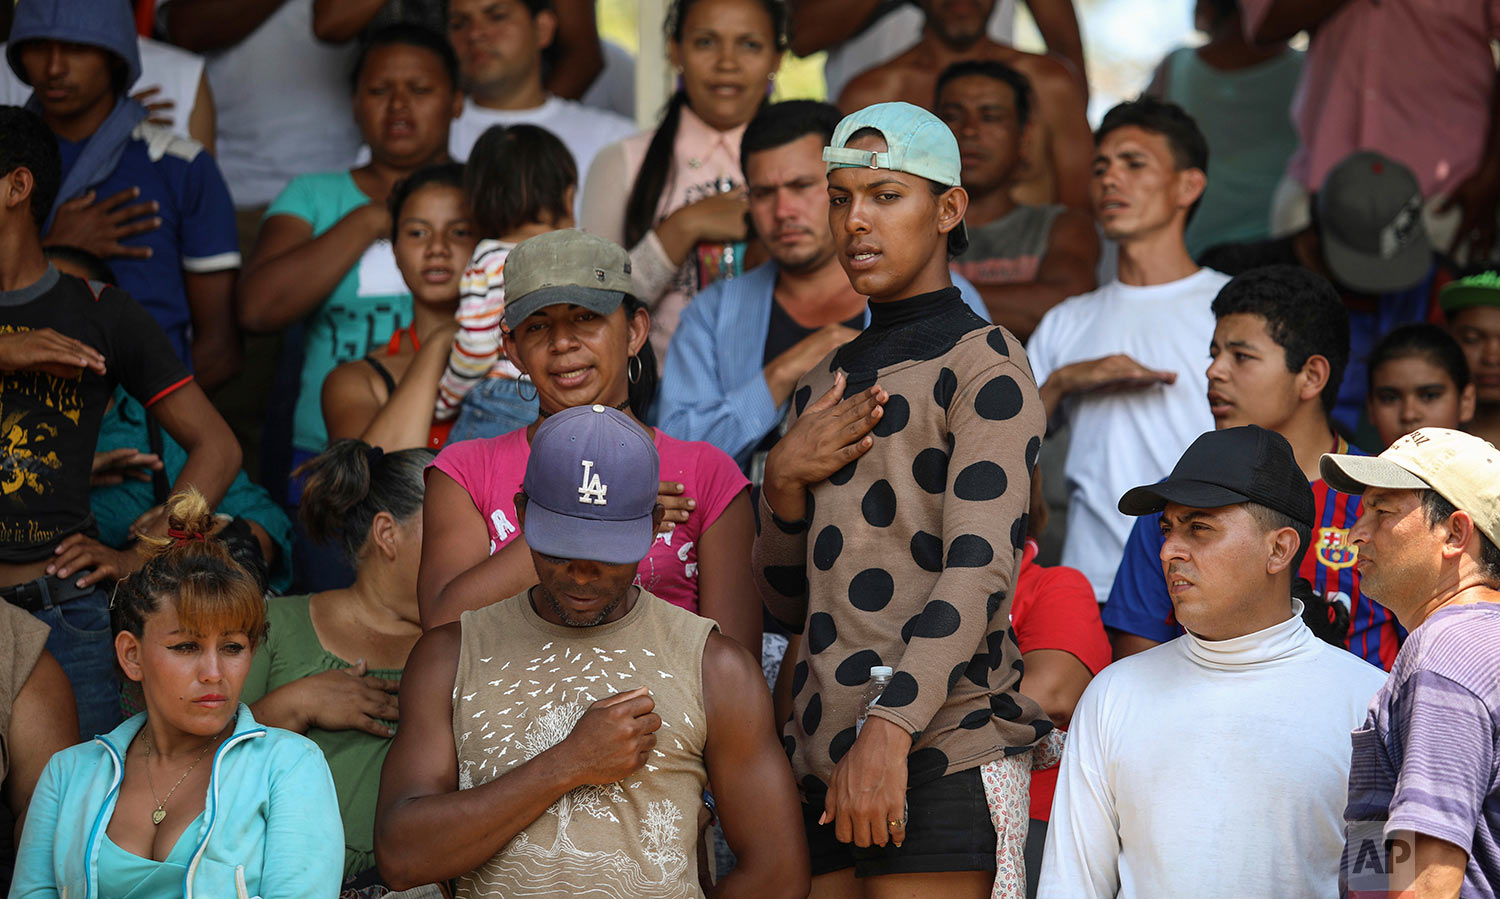 Central American migrants from Honduras sing their national anthem during the annual Migrant Stations of the Cross caravan as the group makes a stop in Matias Romero, Oaxaca state, Mexico, Monday, April 2, 2018. (AP Photo/Felix Marquez)